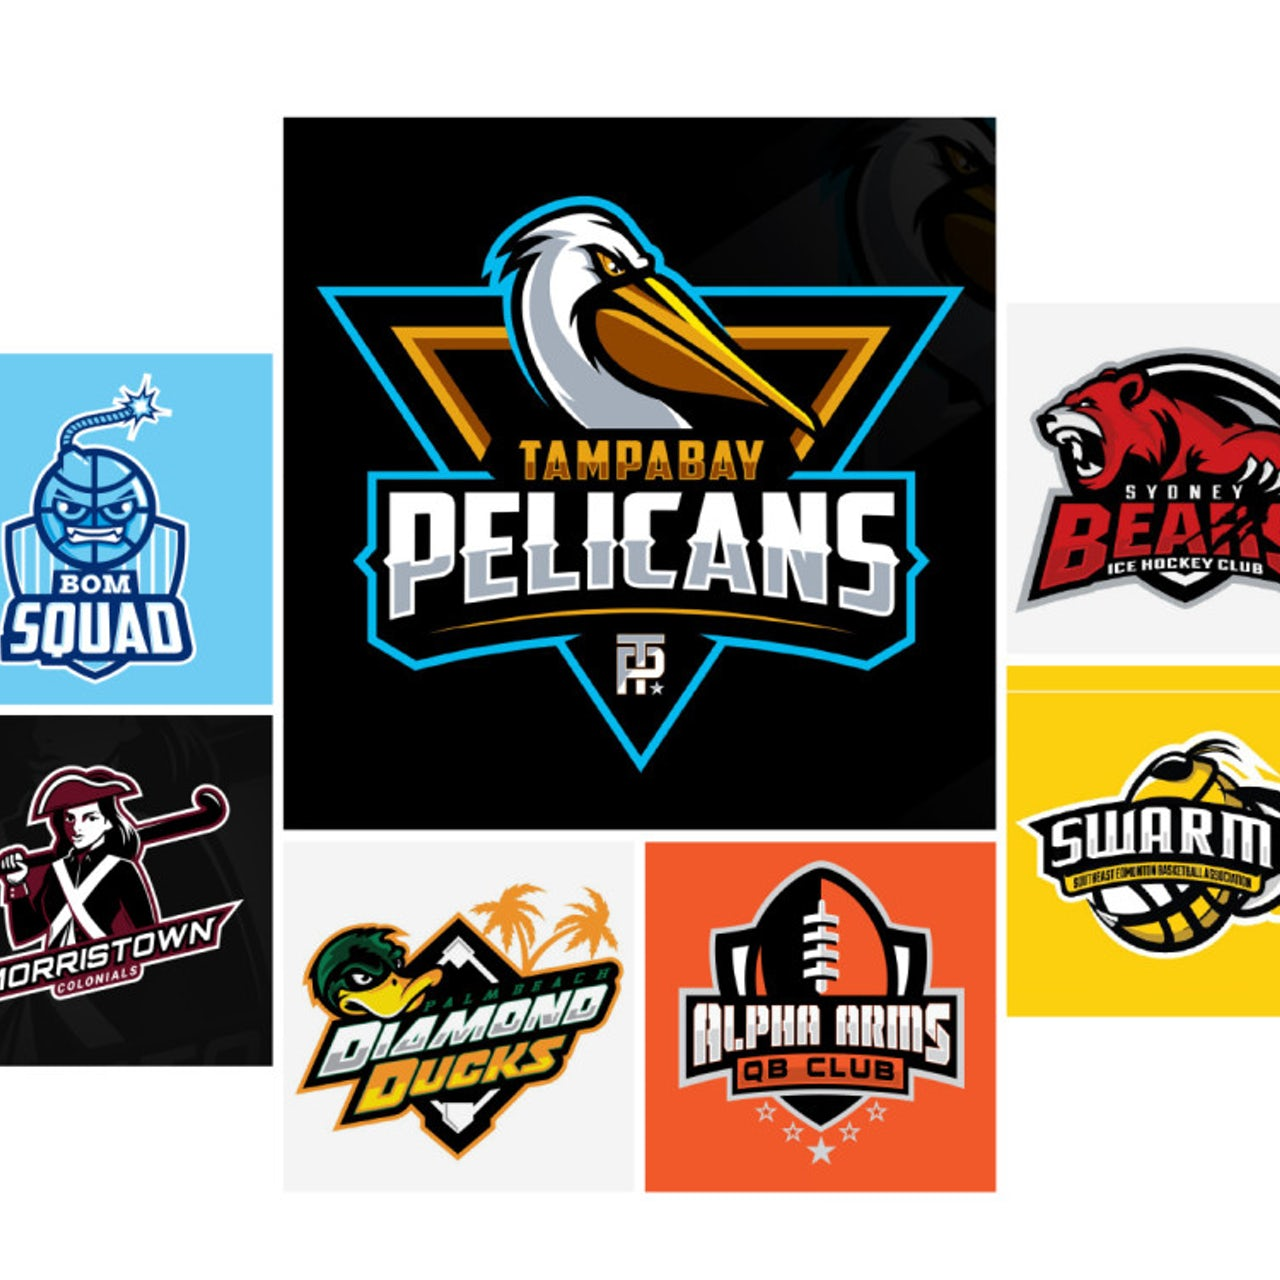 Best Sports Logos 31 Winning Examples For Your Club Or Team